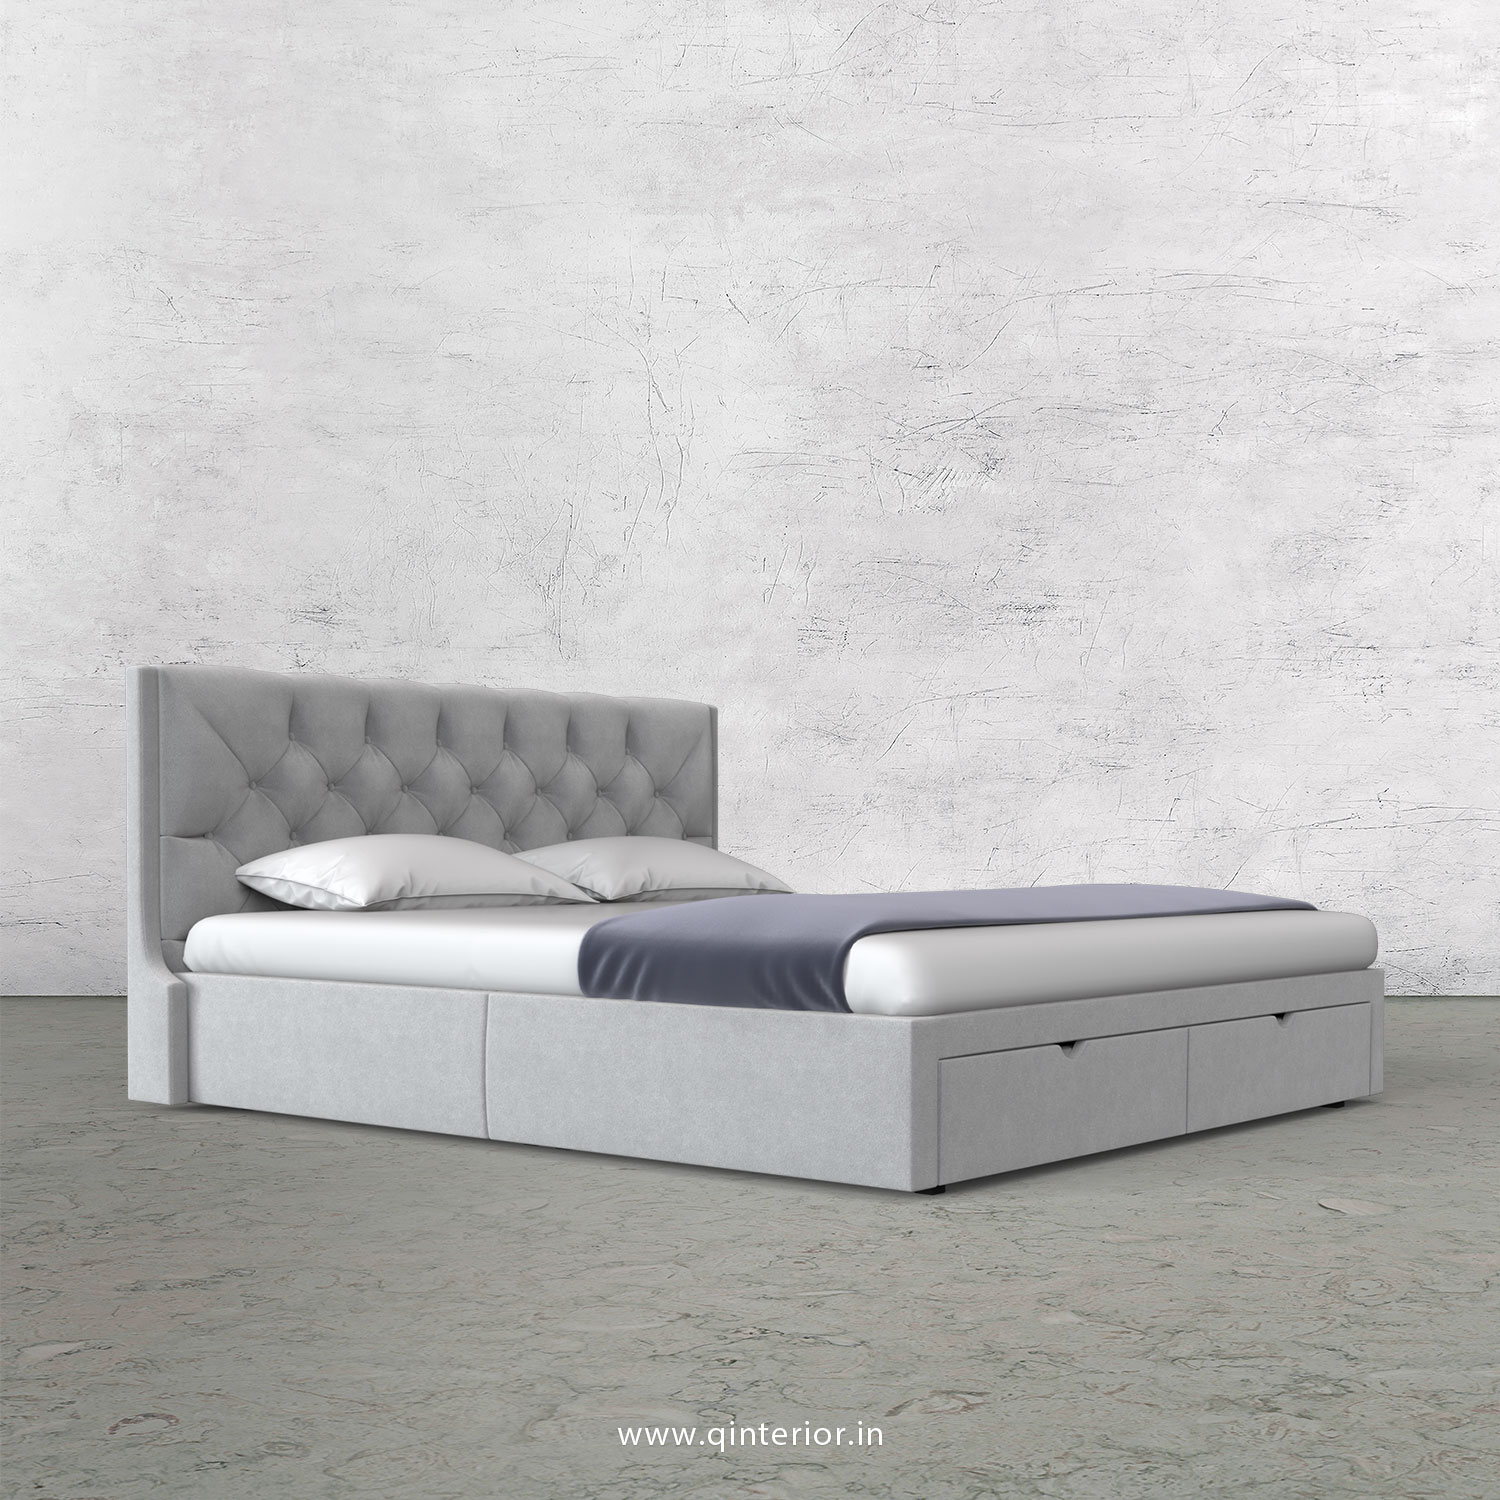 Scorpius Queen Storage Bed in Velvet Fabric - QBD001 VL06